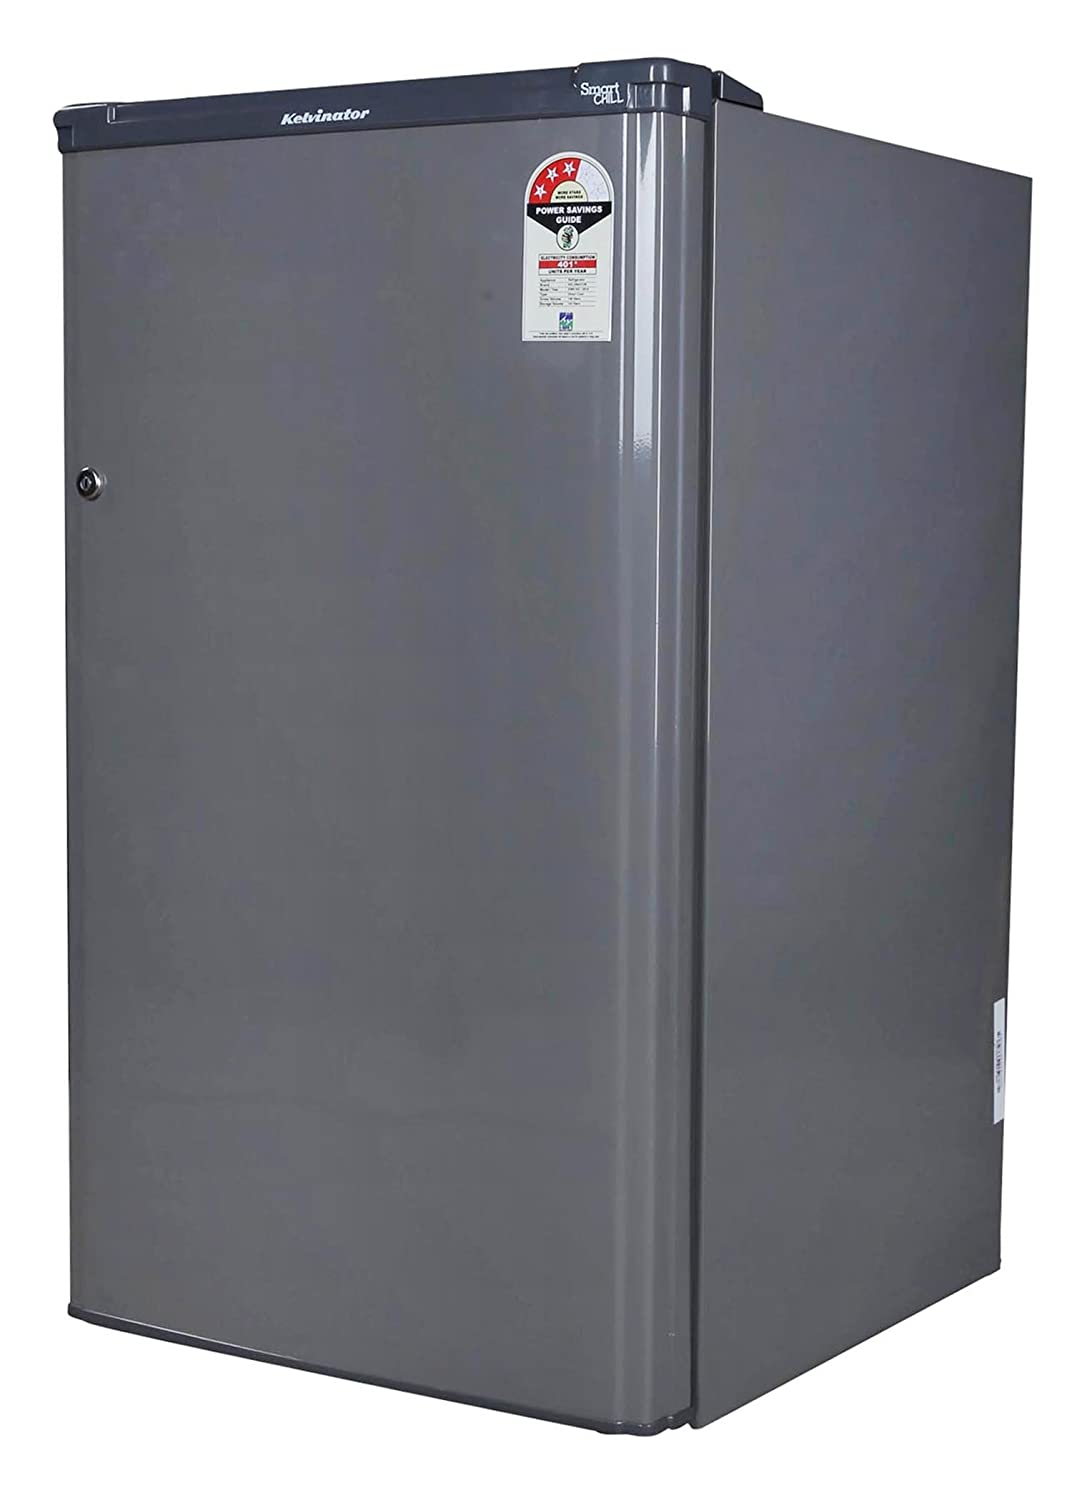 Kelvinator 150 L 3 Star Direct Cool Single Door Refrigerator Kwe163 Silver Hairline In Home Kitchen